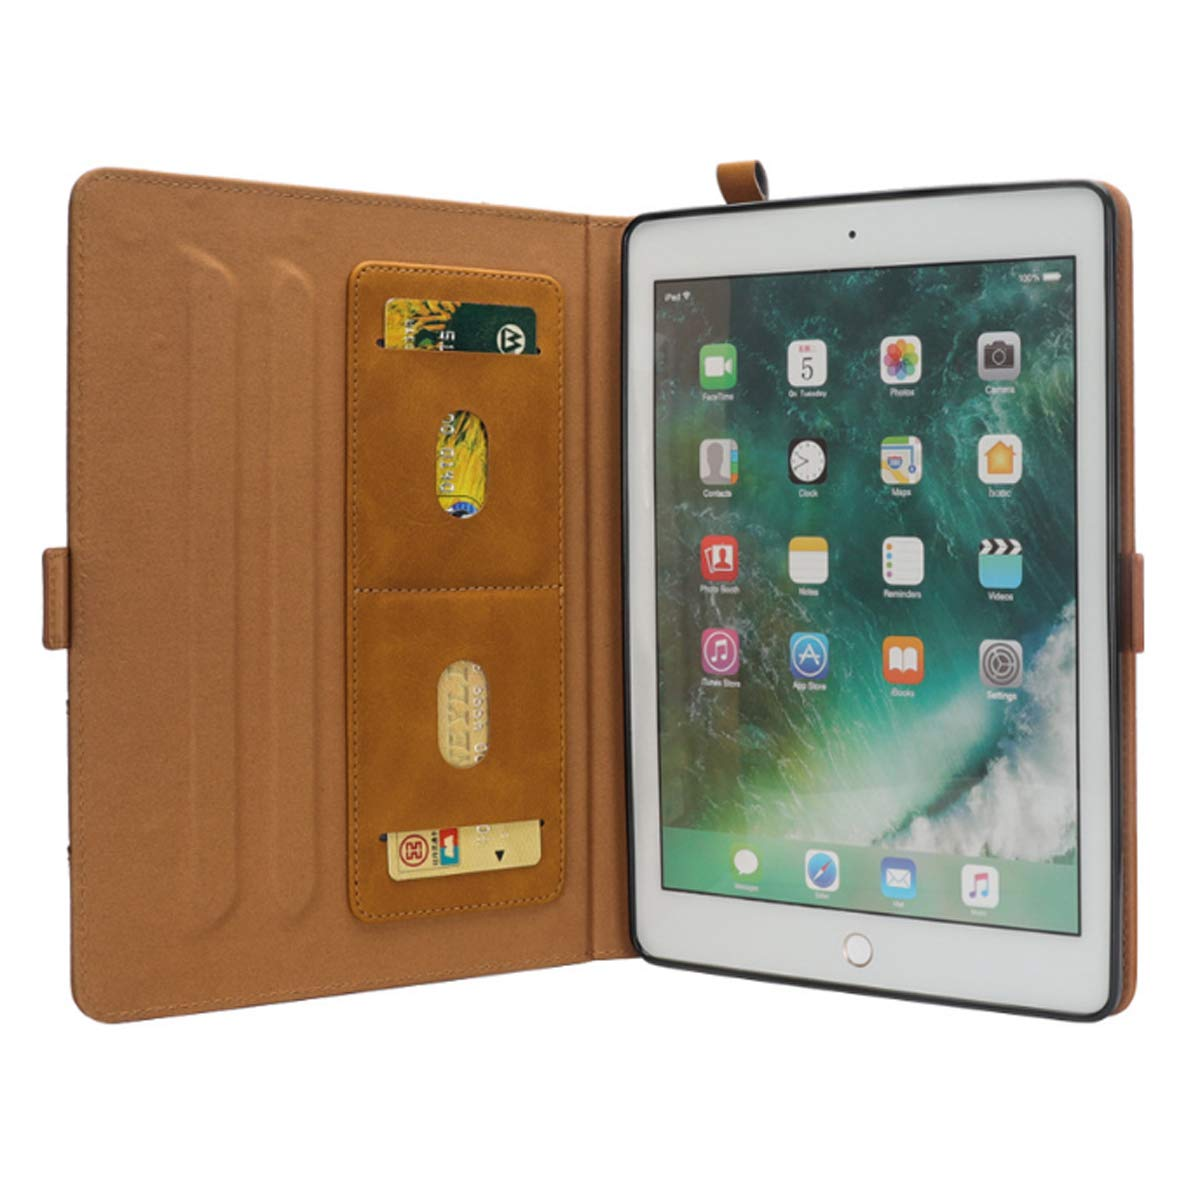 iPad 6th Generation Cases with Pencil Holder, Premium PU Leather Folio Case Soft TPU Back Protective Stand Cover with Card Slots for iPad 9.7 Inch 2018 (6th Gen) / iPad 9.7'' 2017 (5th Gen) –Khaki by KATEGY (Image #8)